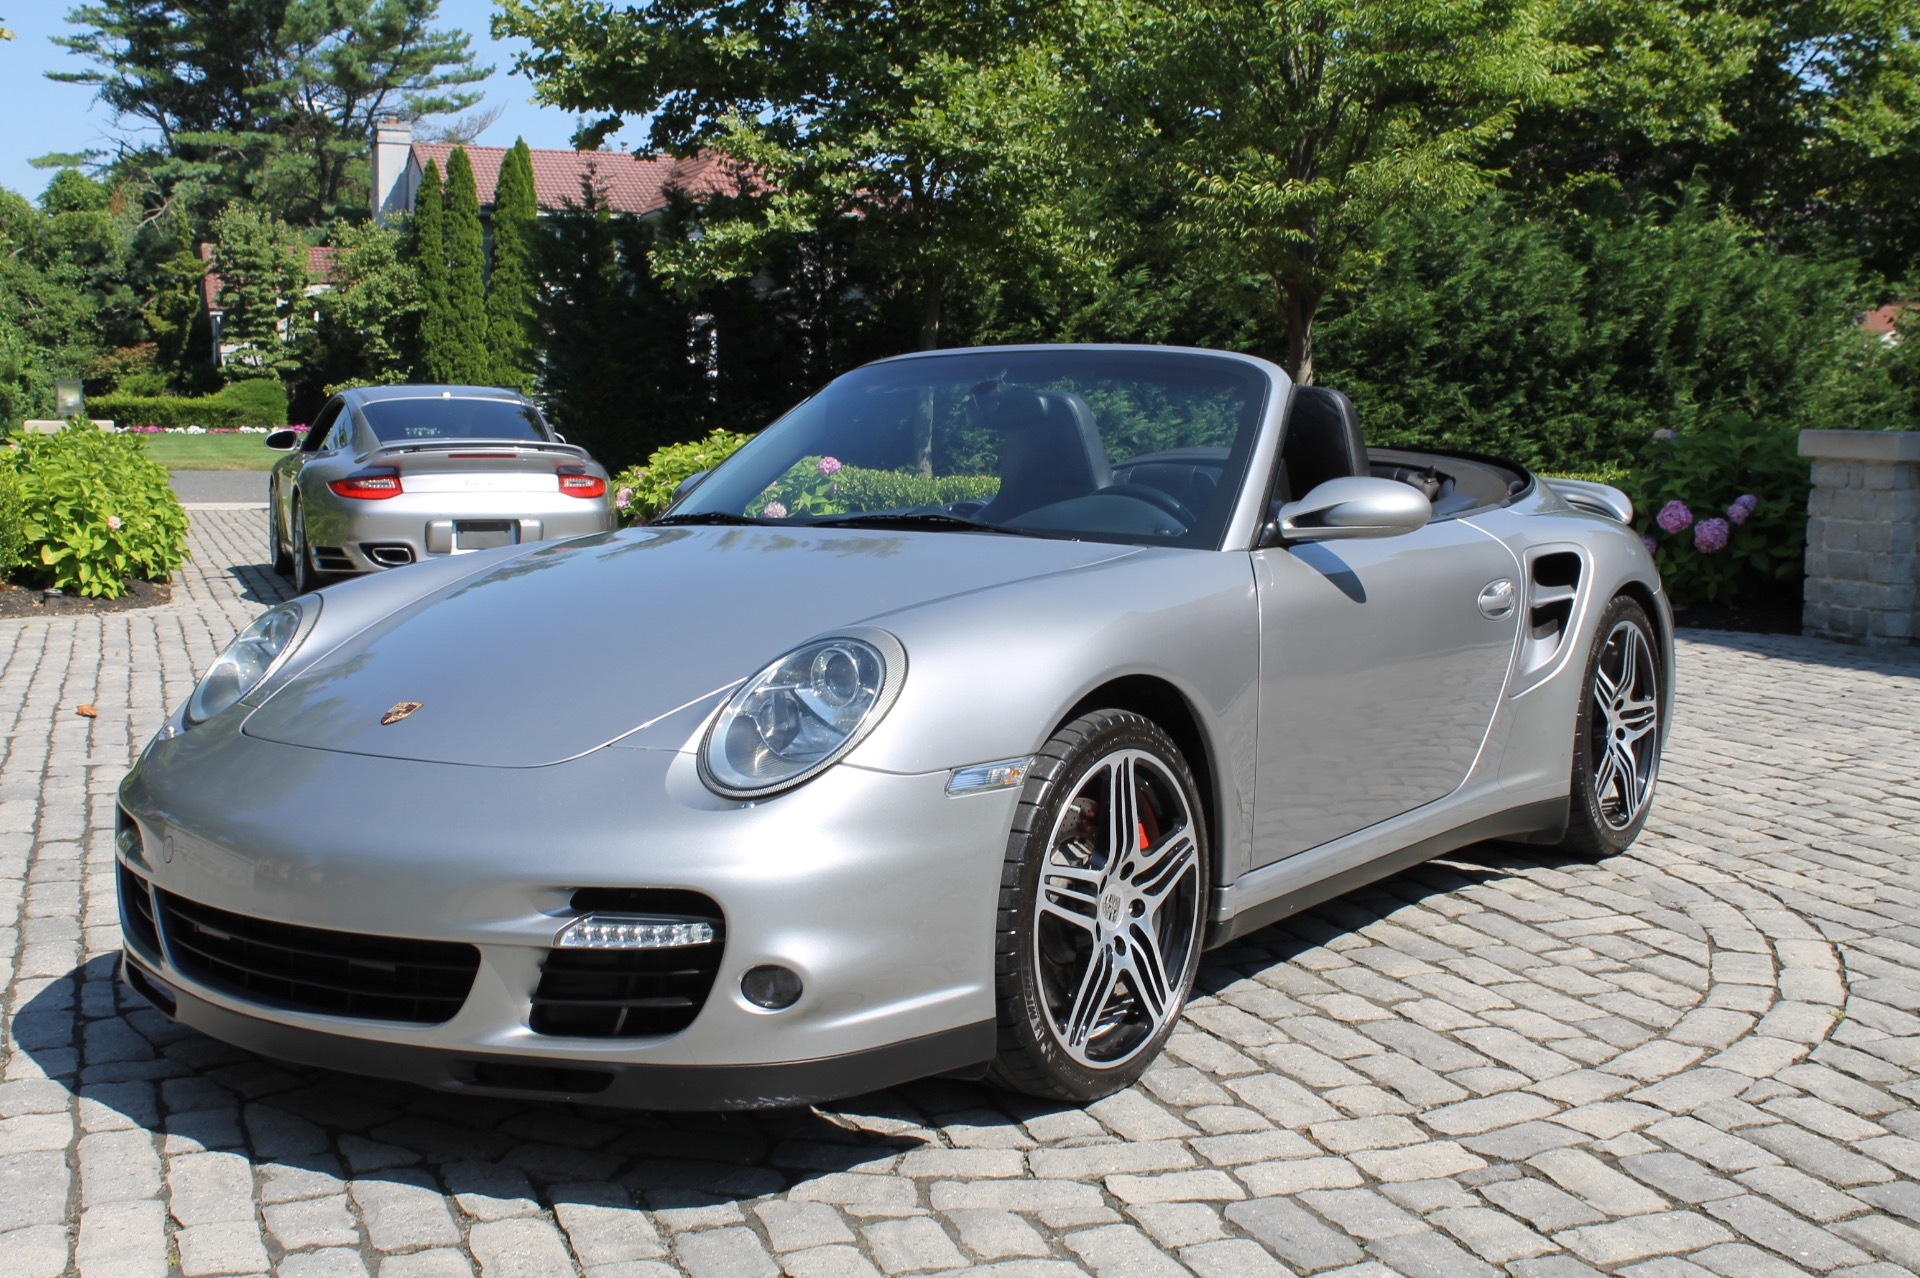 2008 Porsche 911 Turbo Tiptronic Turbo